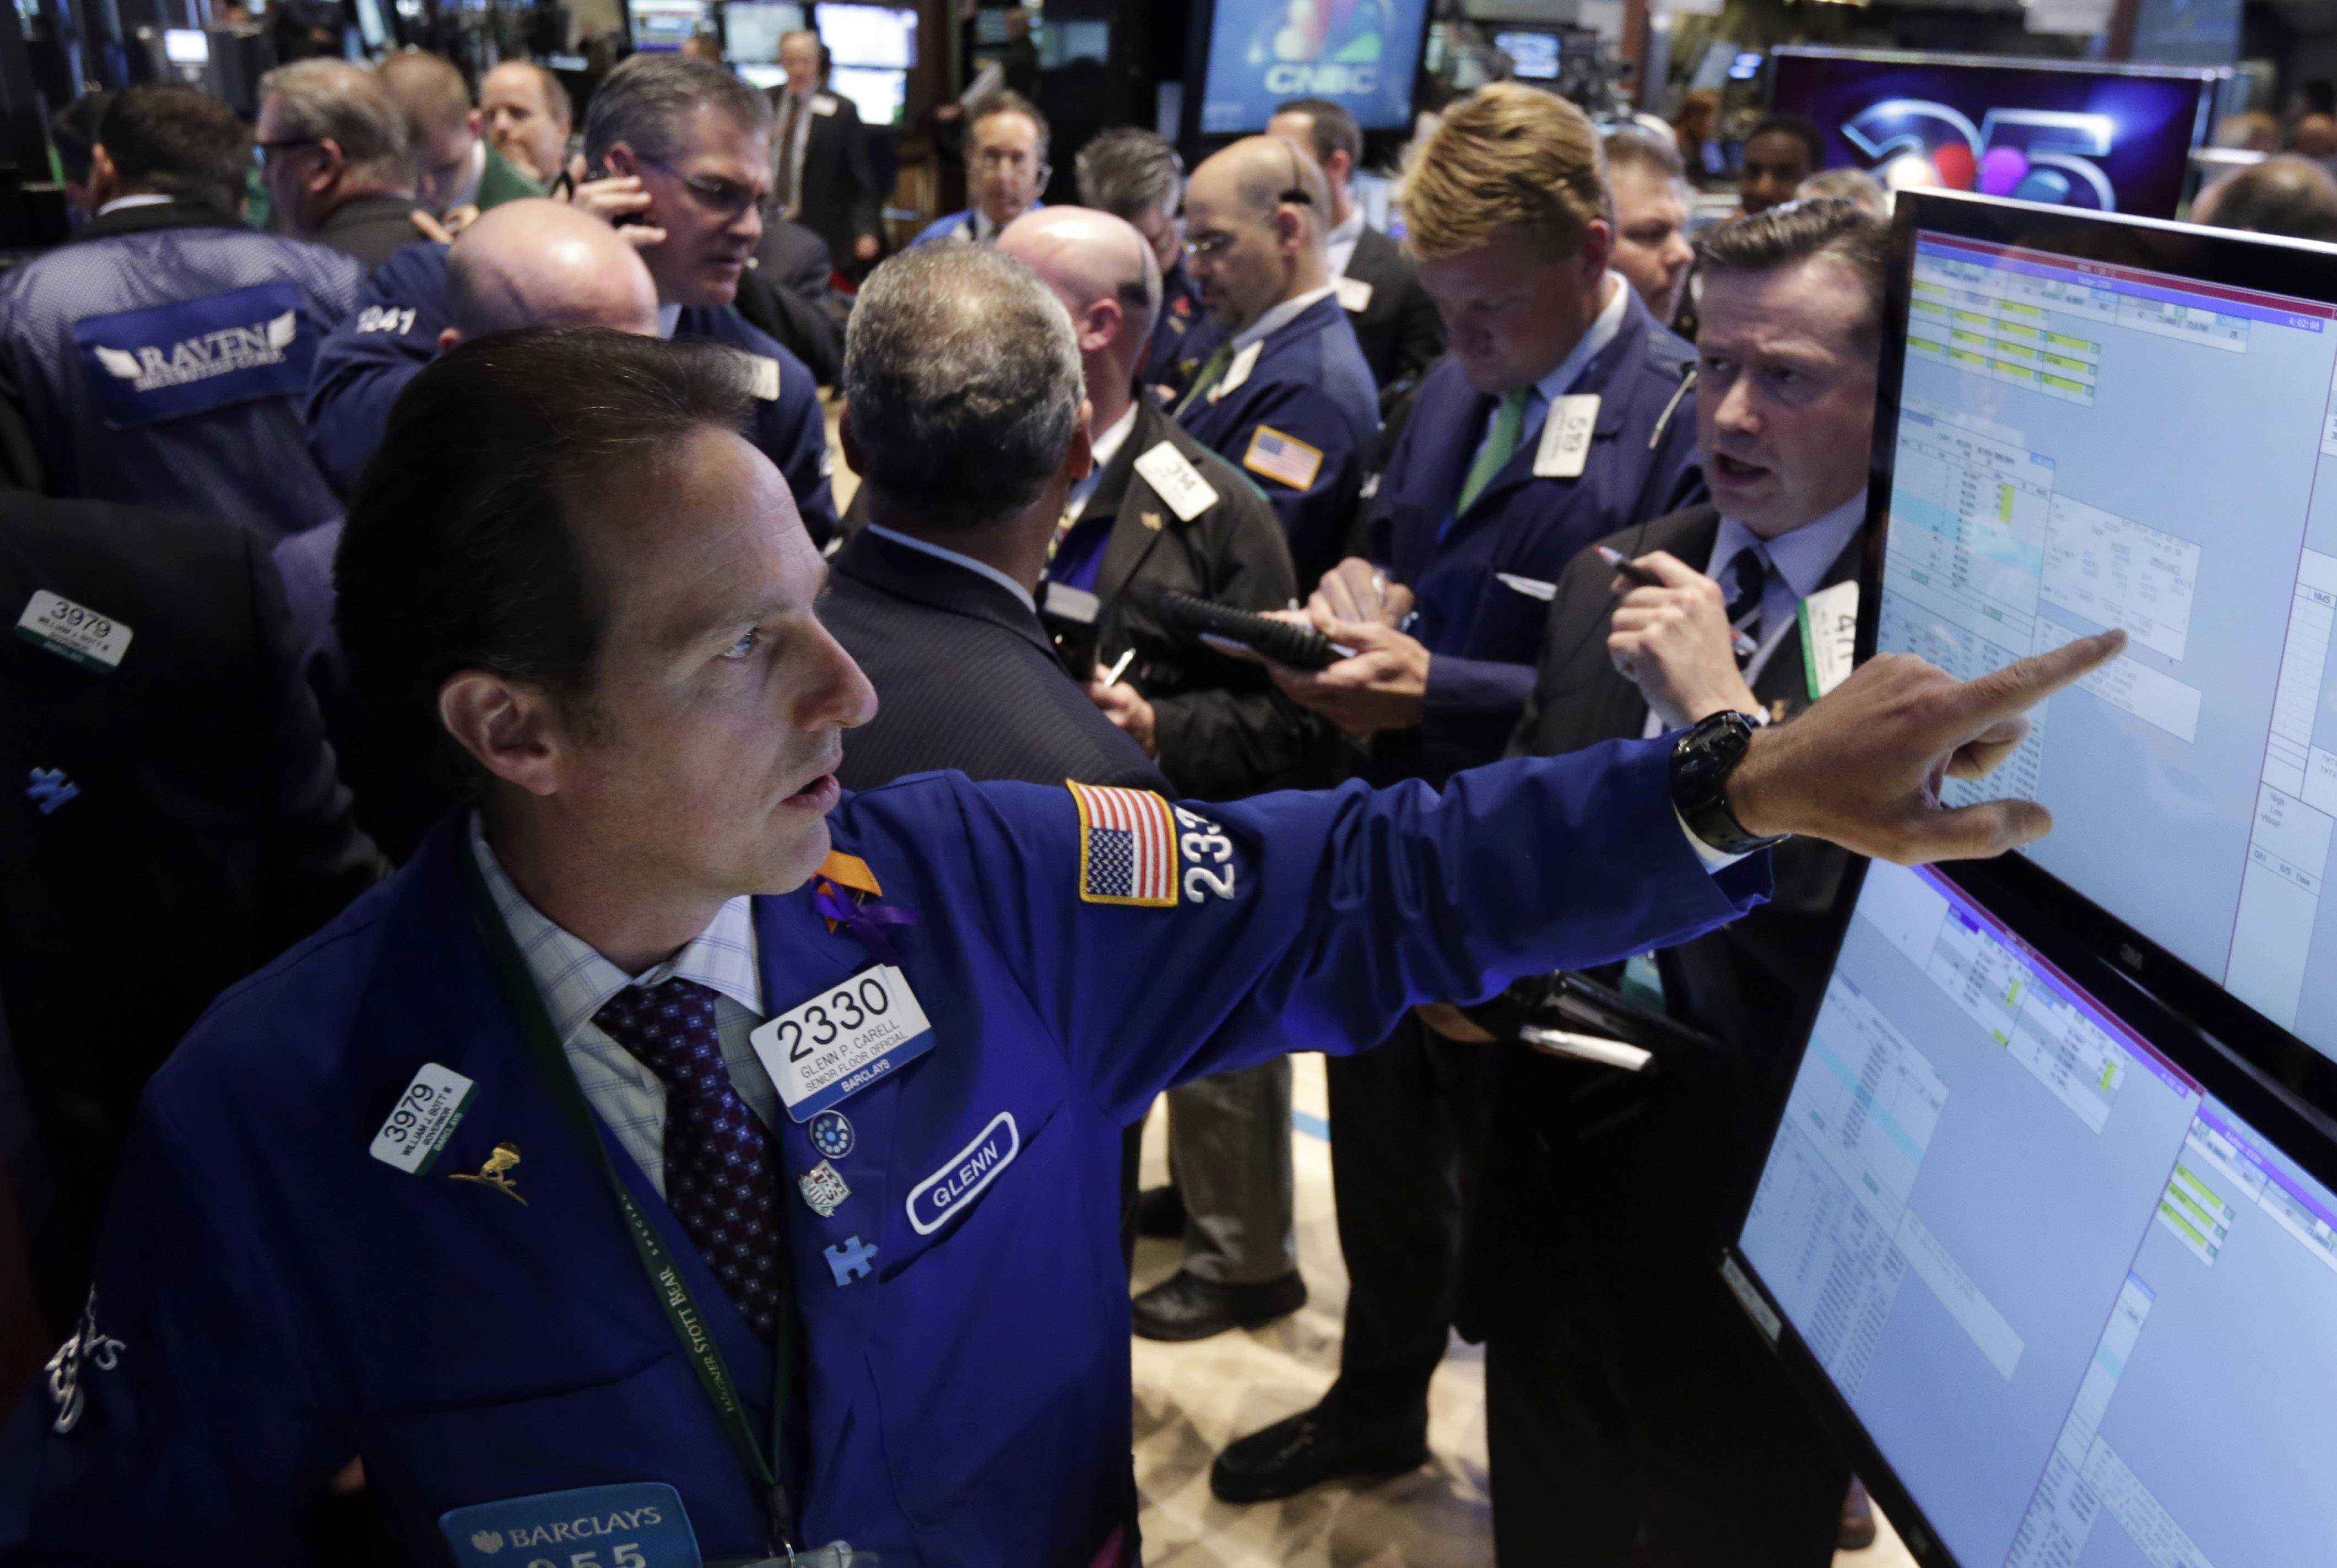 U.S. stocks ended little changed, with the Dow Jones Industrial Average falling from a record, as data showed an increase in jobless claims before the government's monthly labor report tomorrow.